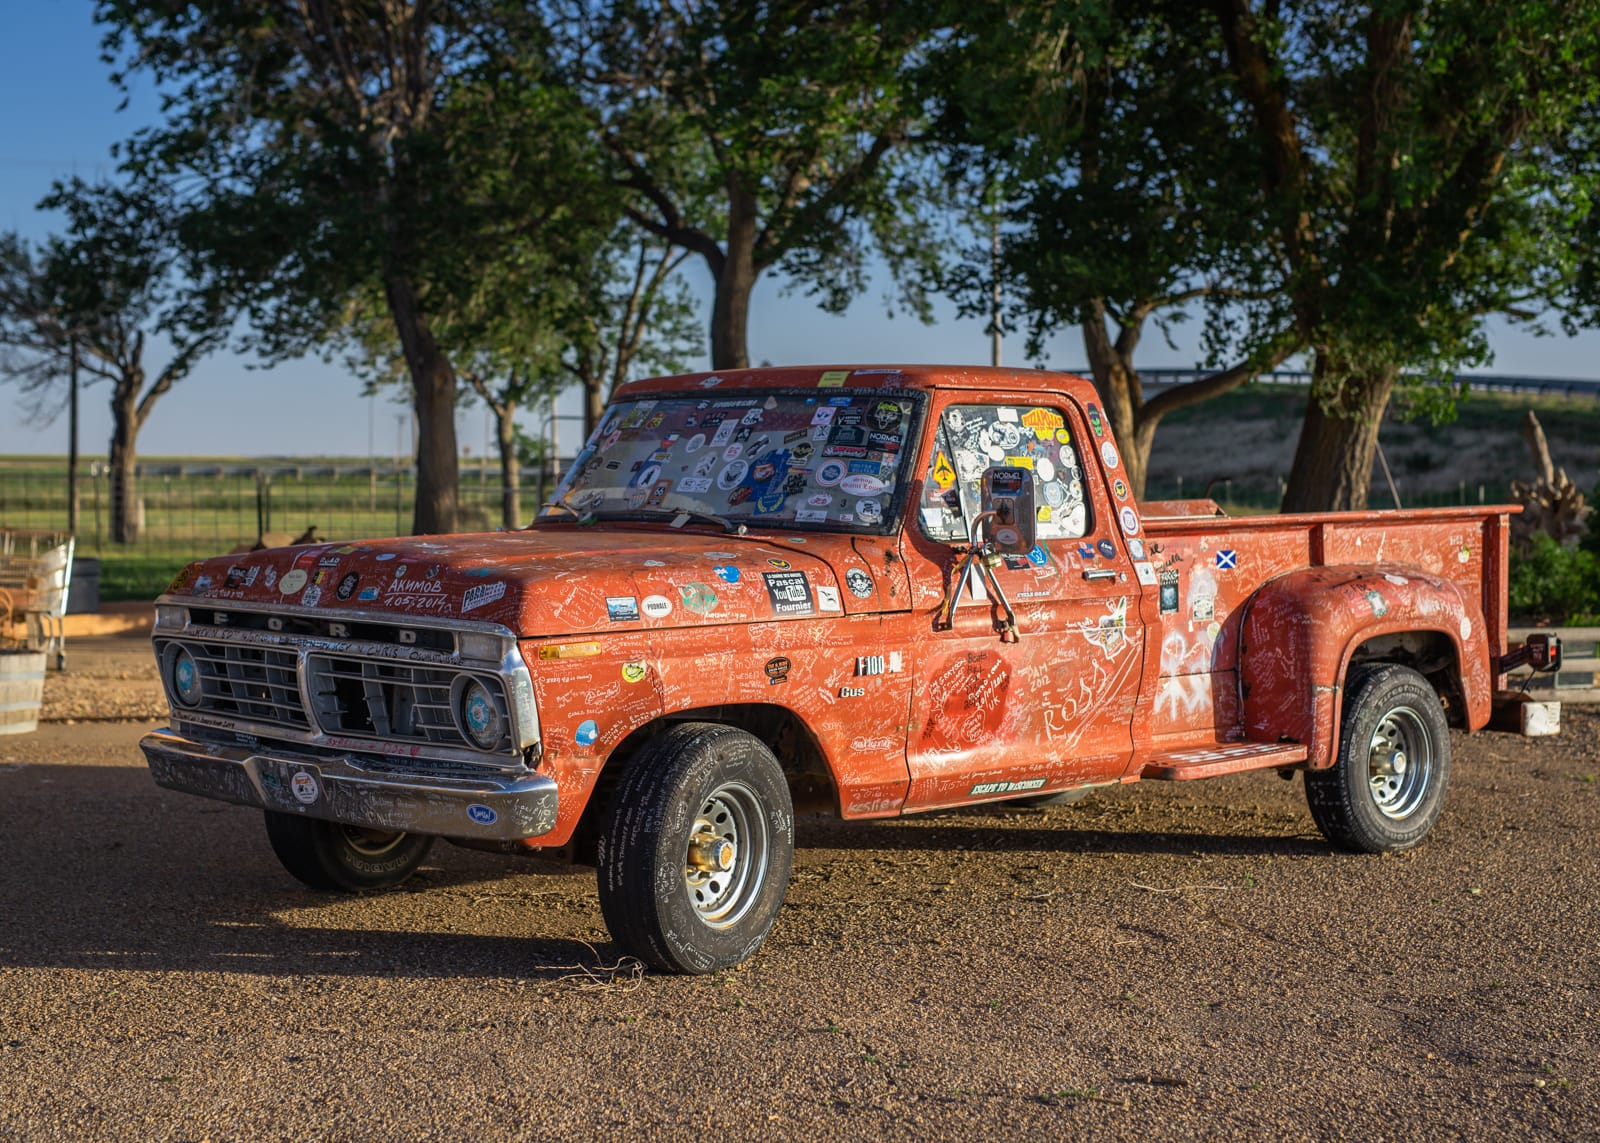 A ford truck with stickers and writing all over it in Adrian, Texas